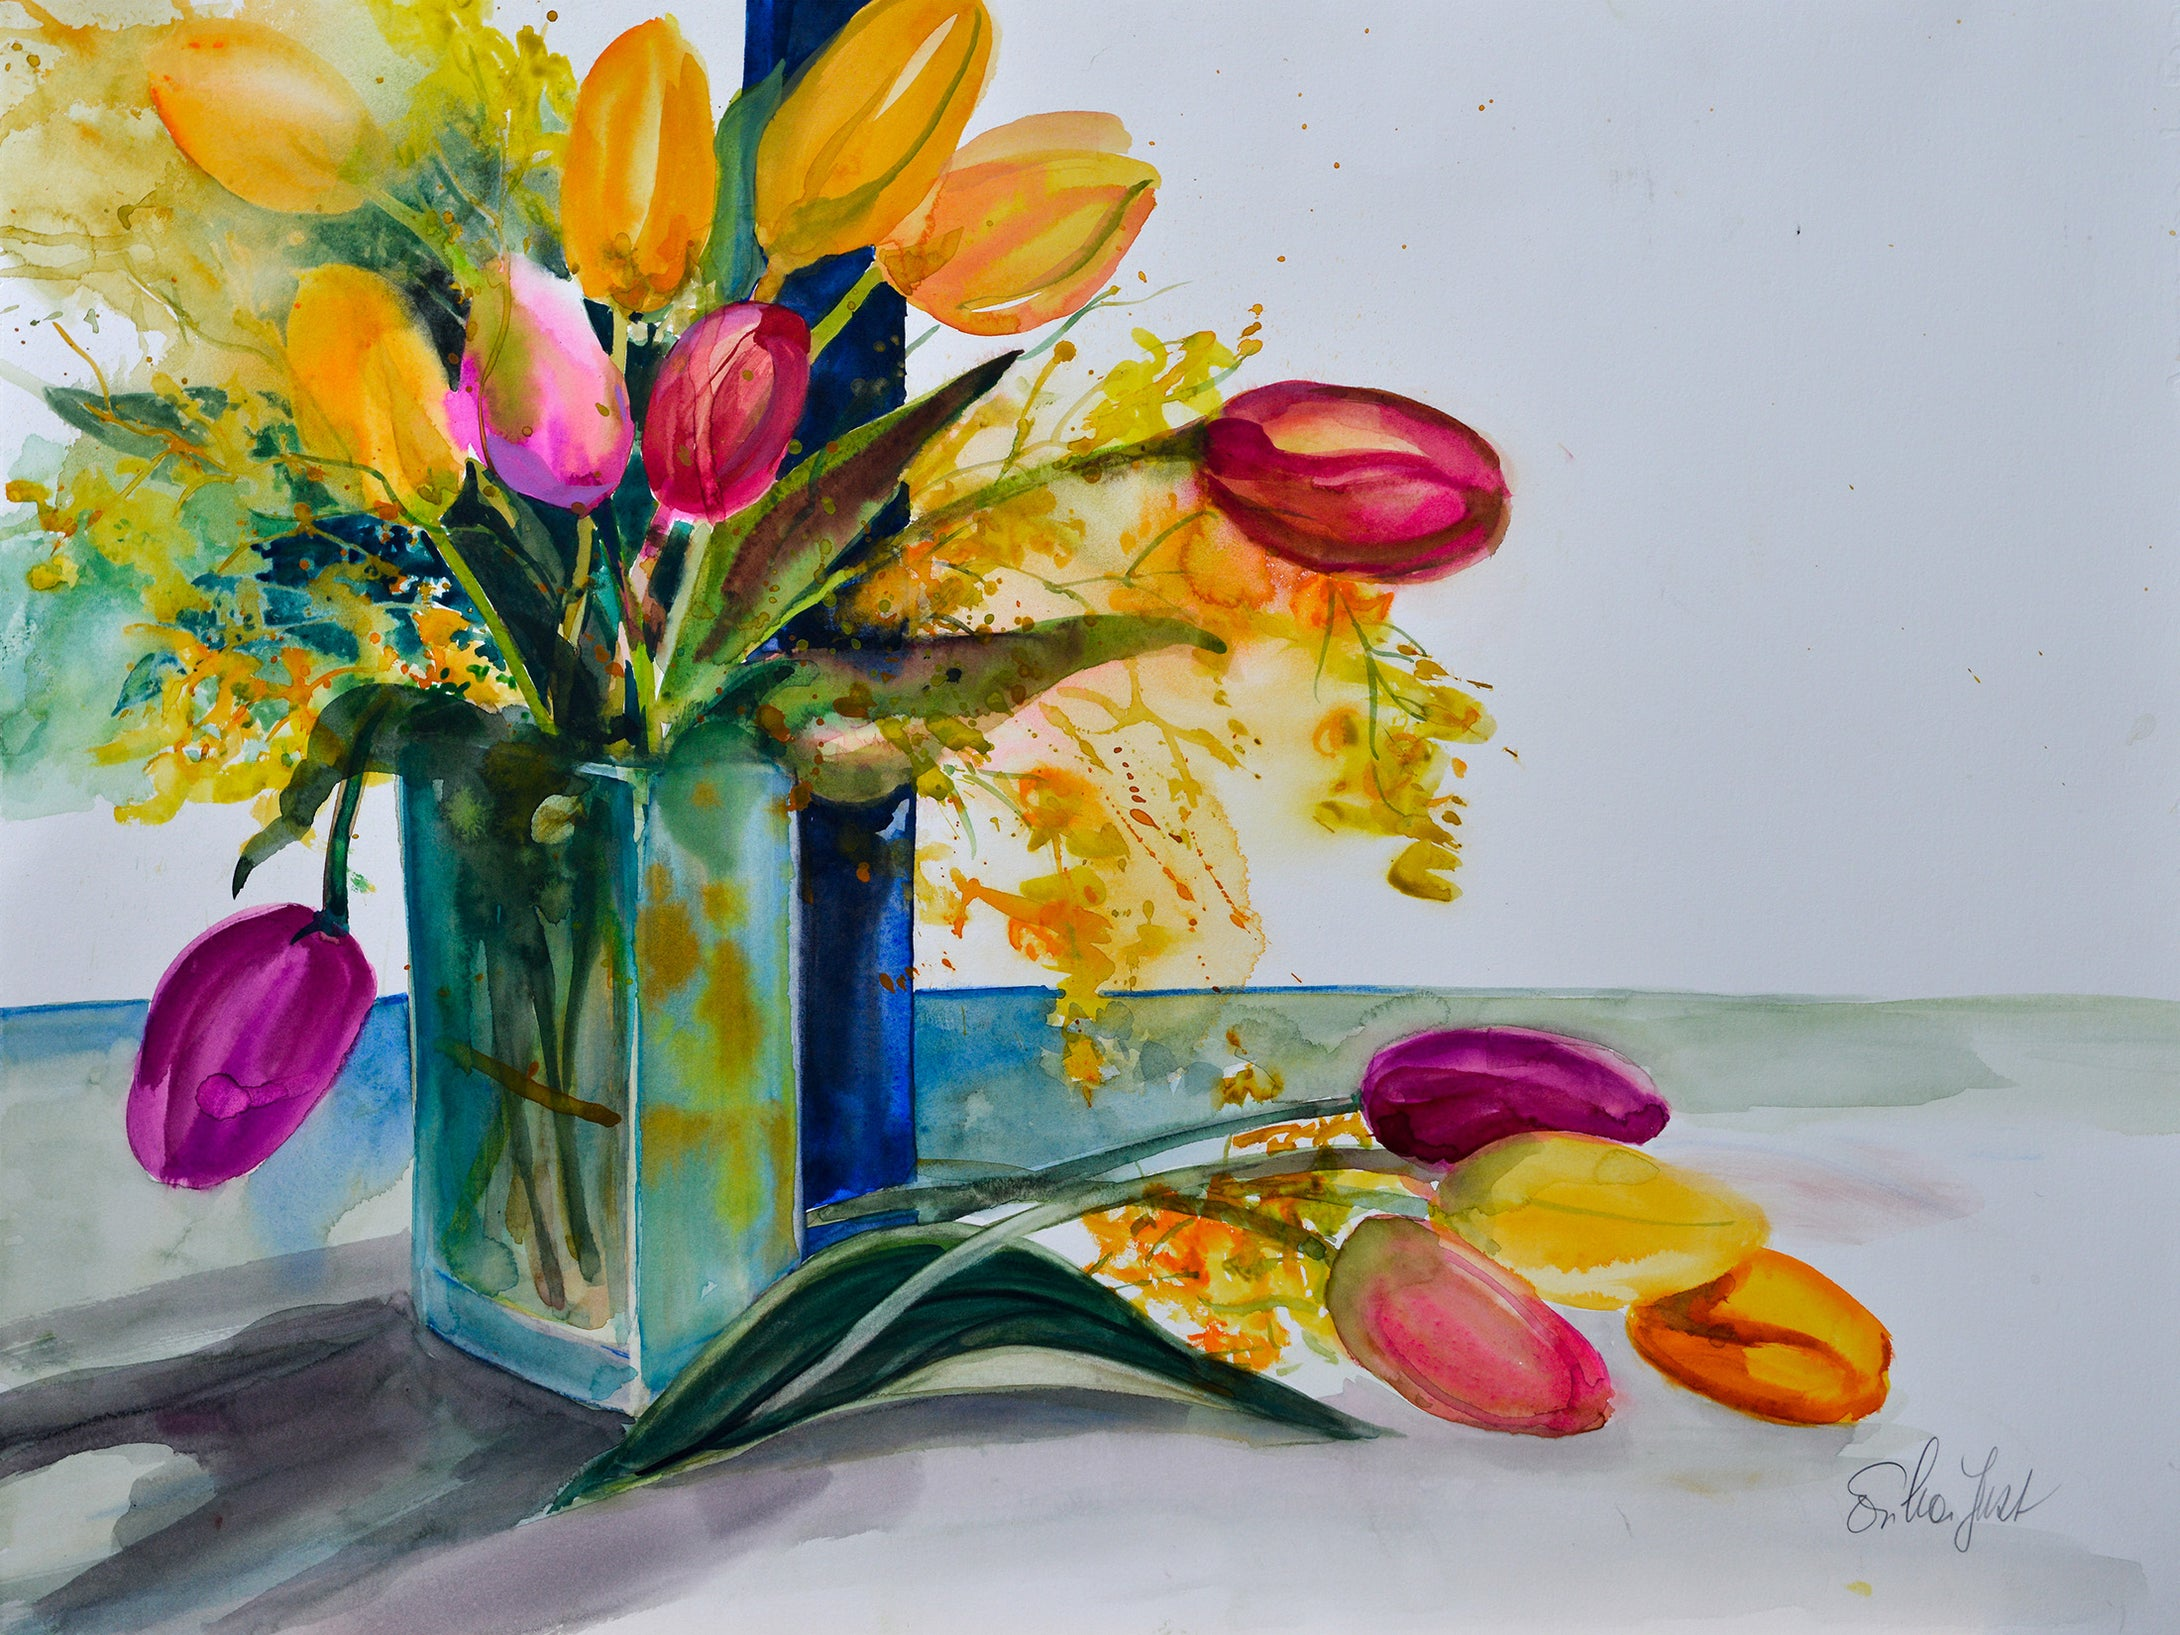 Original - Tulip in a Glass Vase (Easter Greetings)